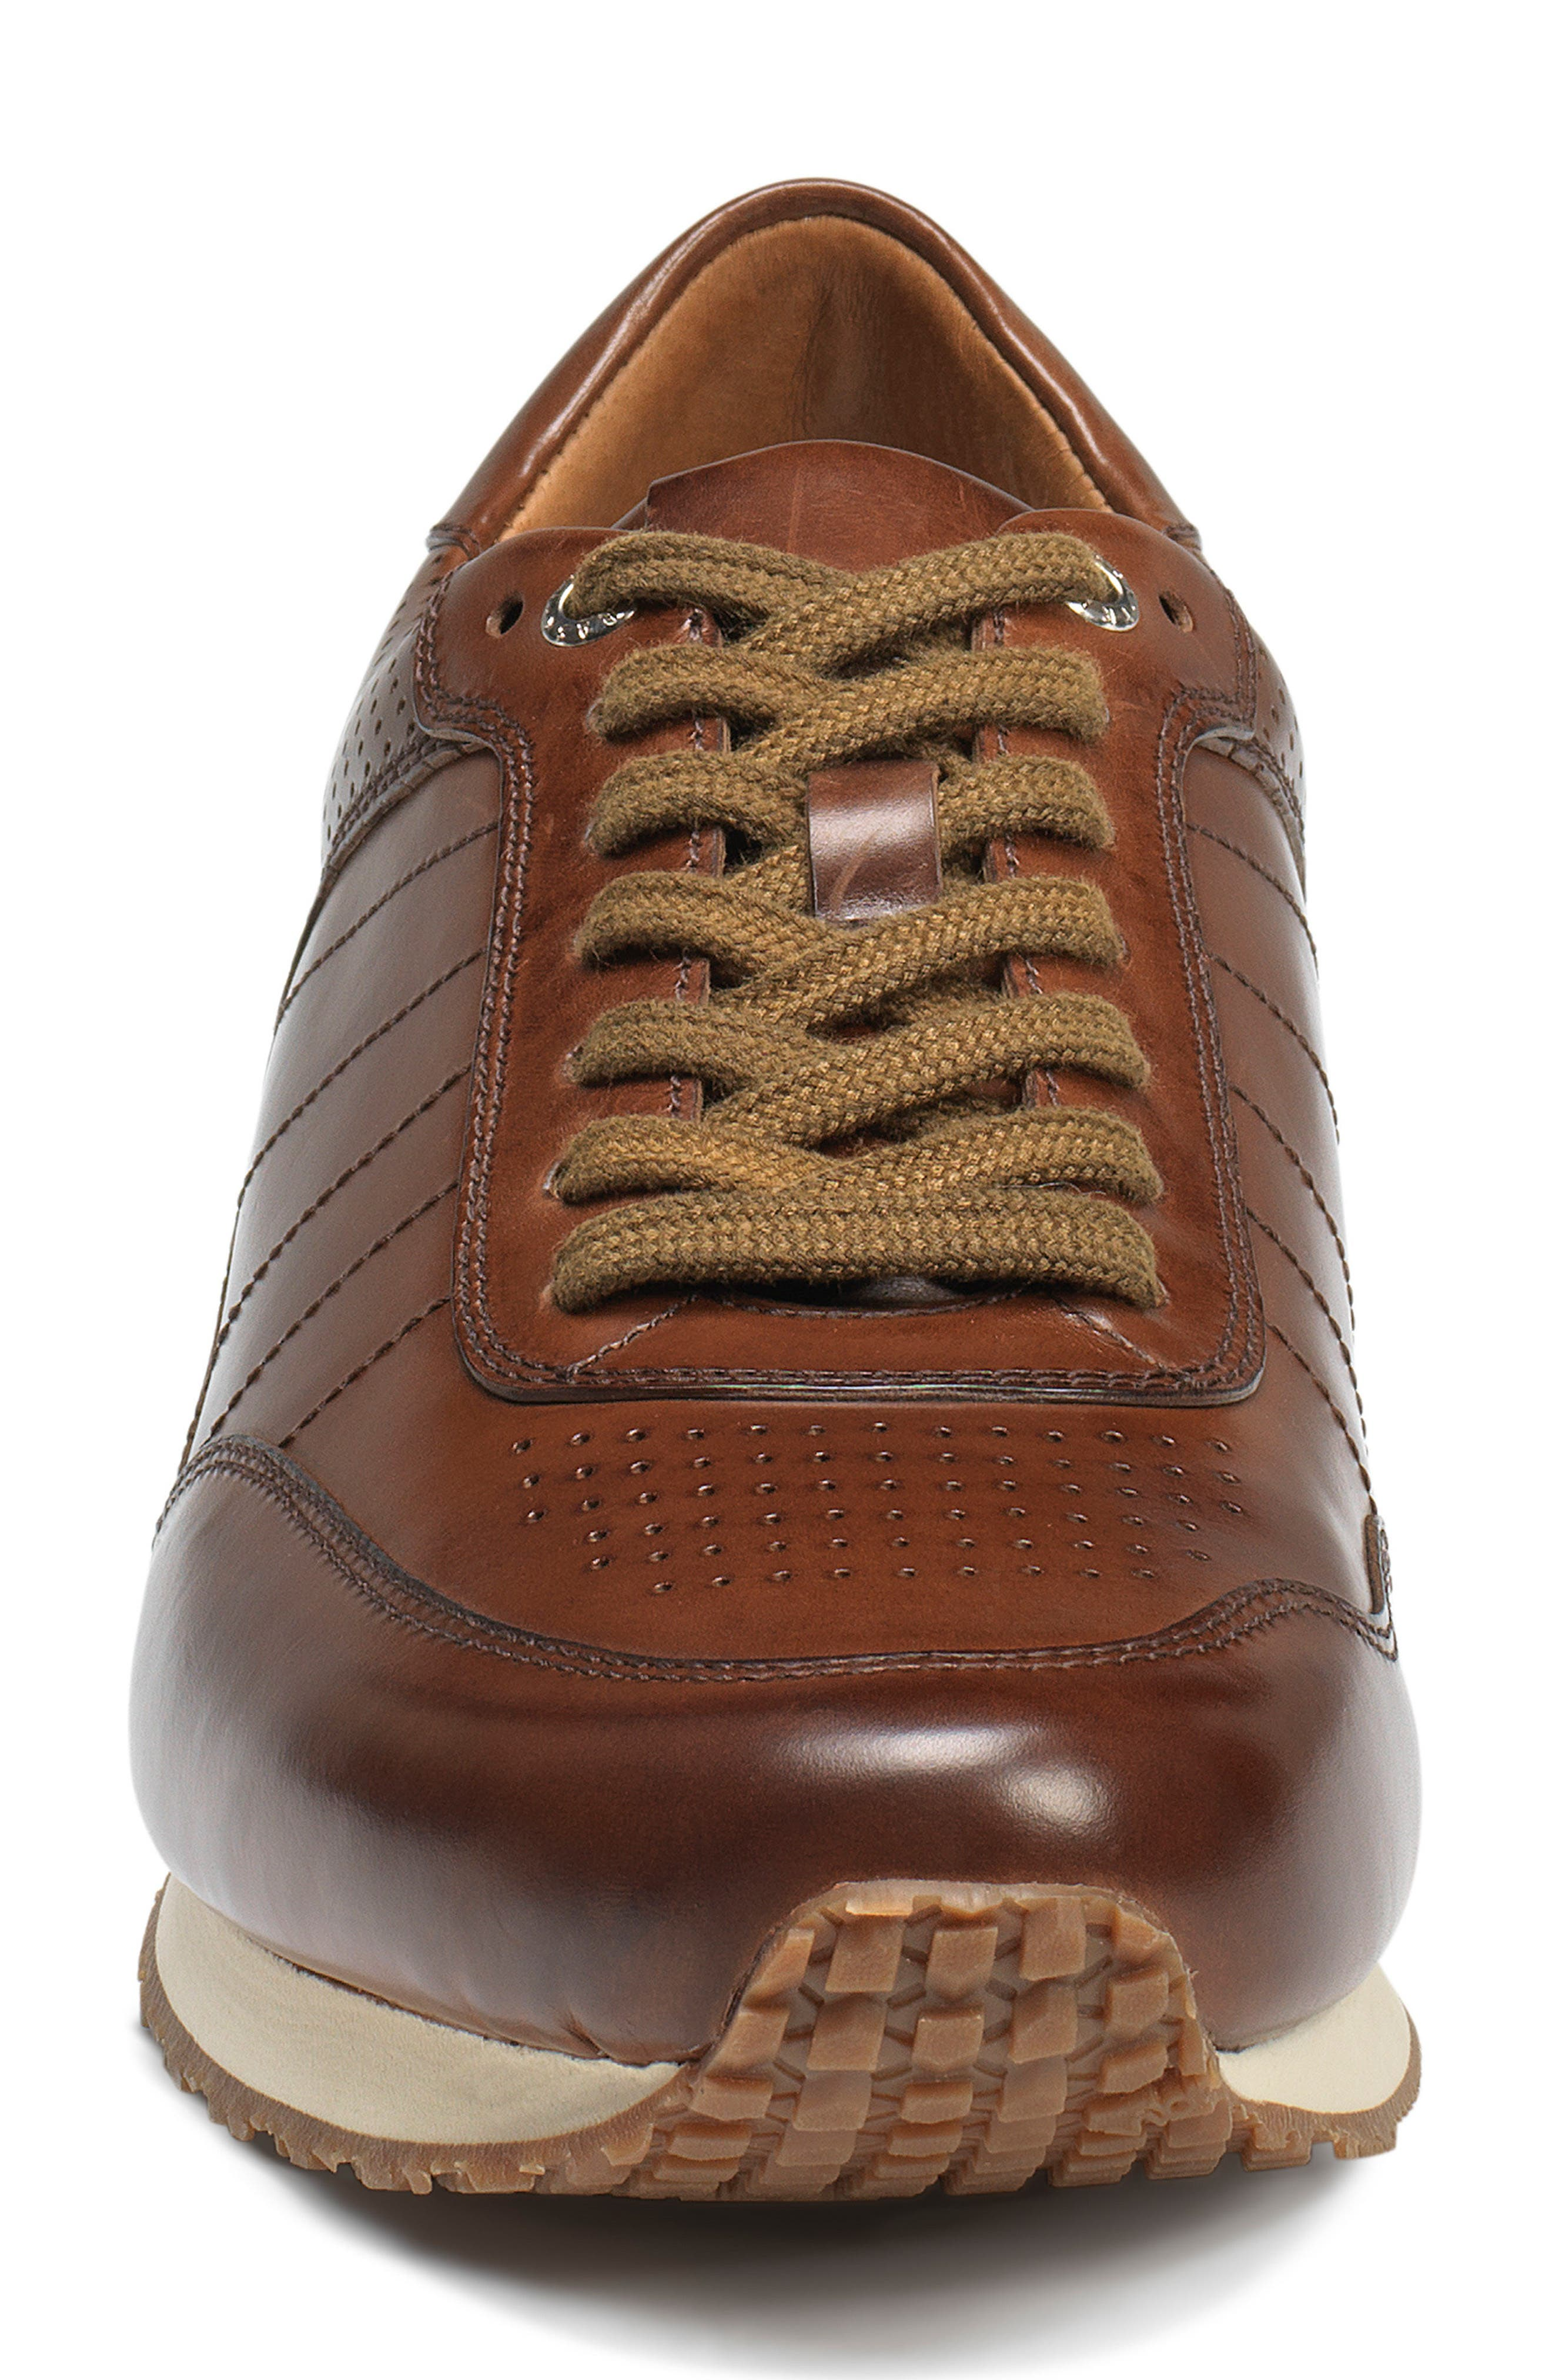 Aiden Sneaker,                             Alternate thumbnail 4, color,                             Brown Leather